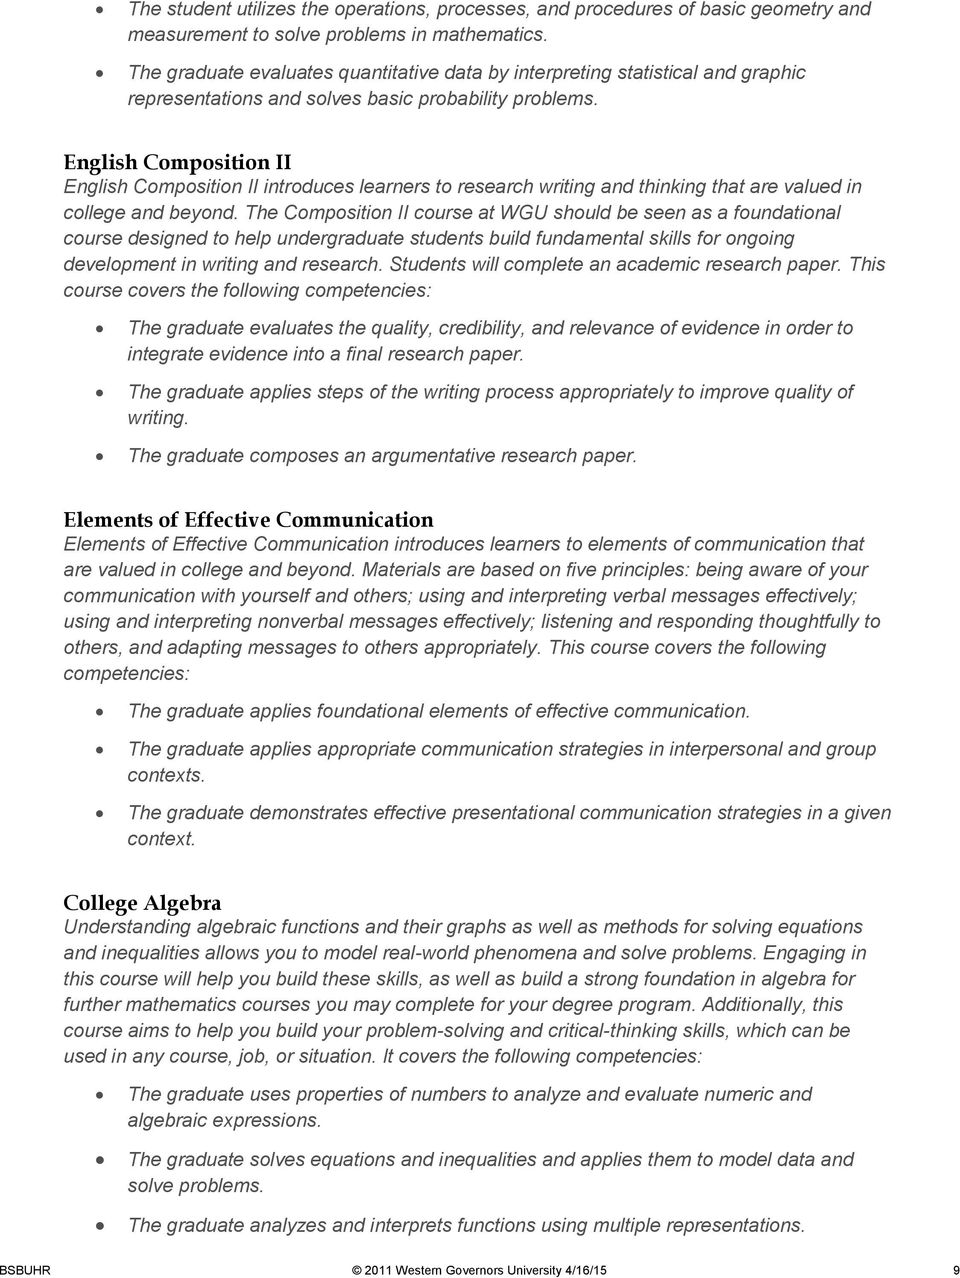 English Composition II English Composition II introduces learners to research writing and thinking that are valued in college and beyond.